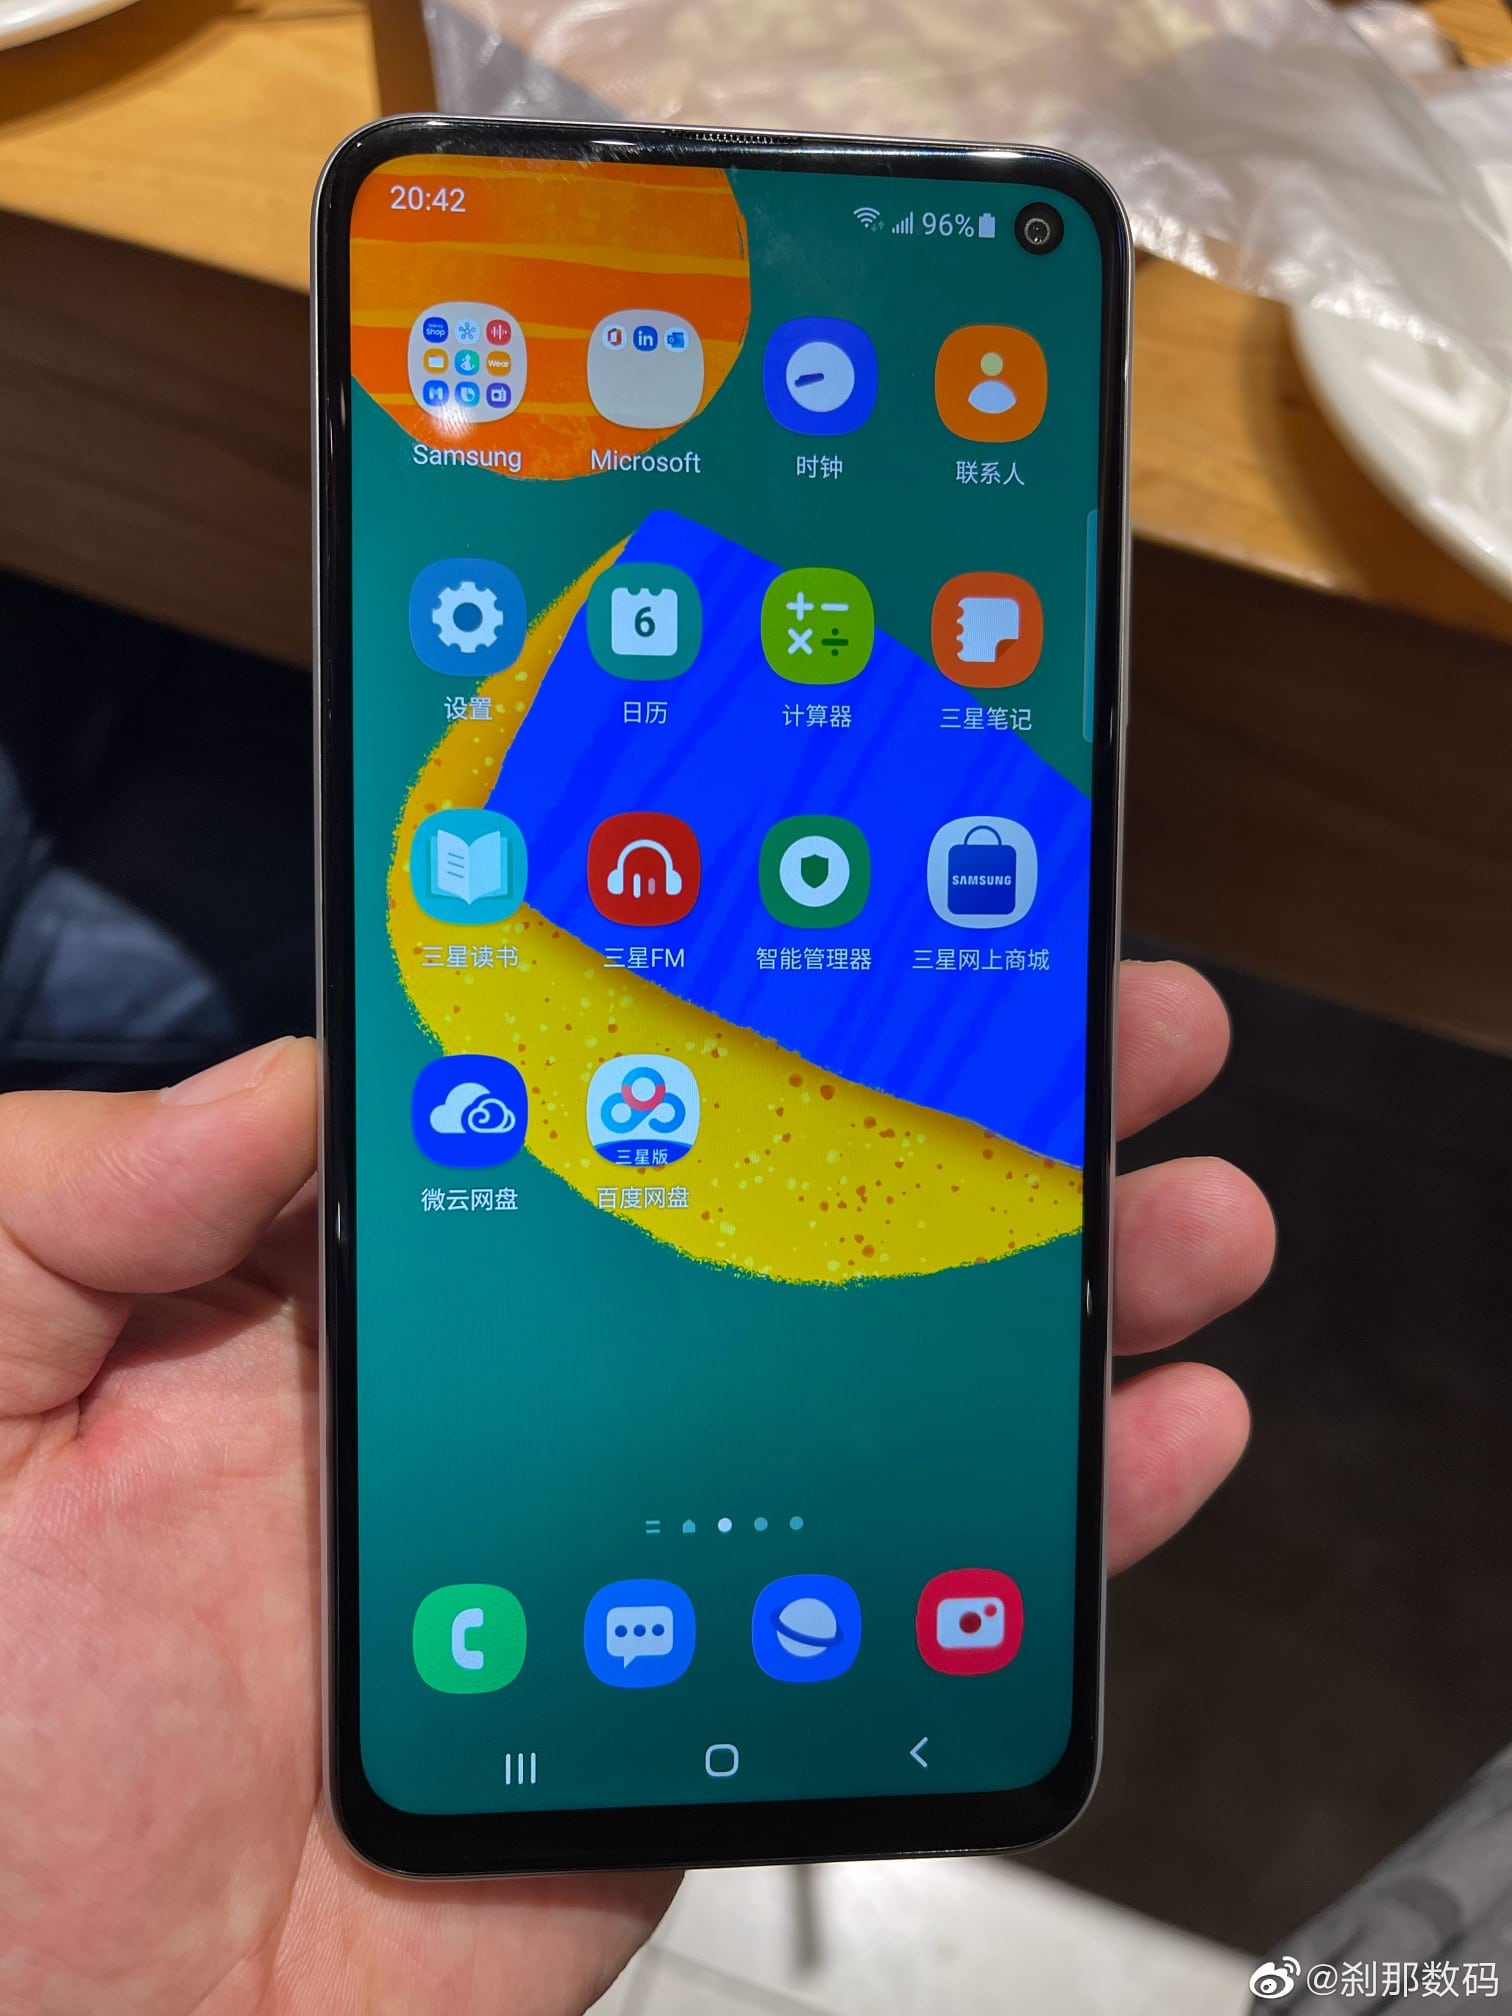 Samsung Galaxy F52 5G is Coming Soon, Price and Images Leaked